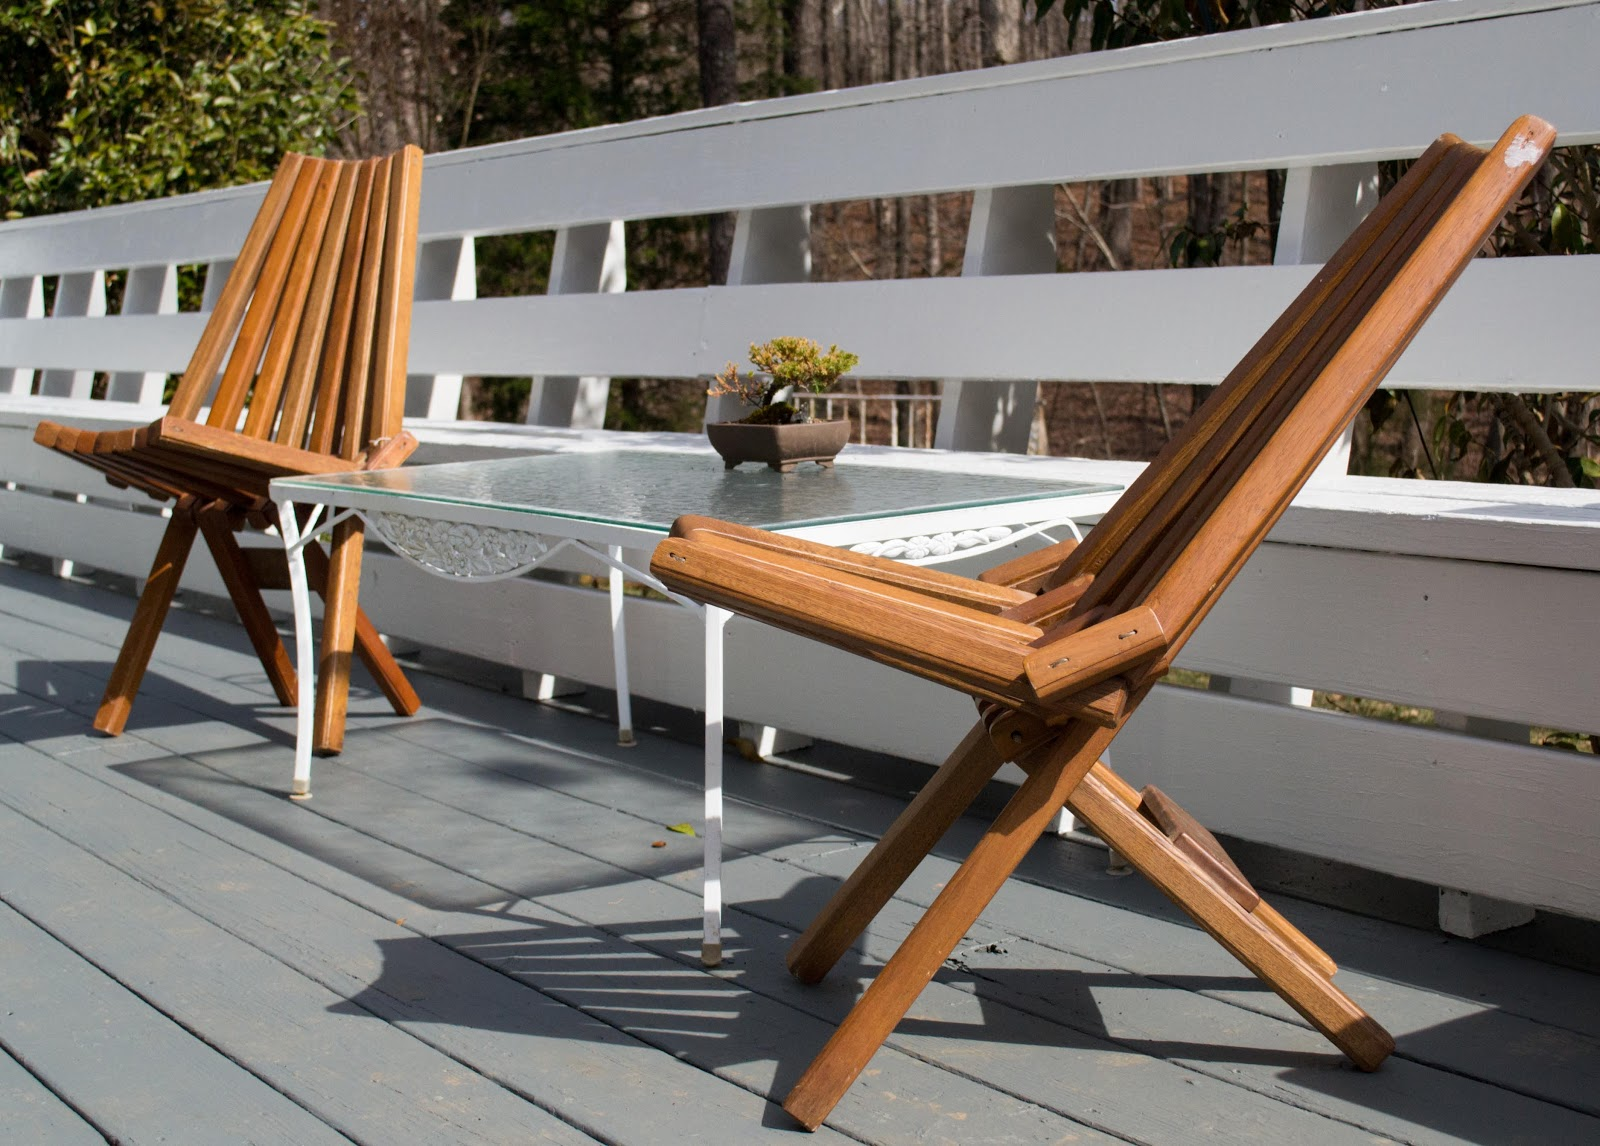 teak panamerican deck chairs